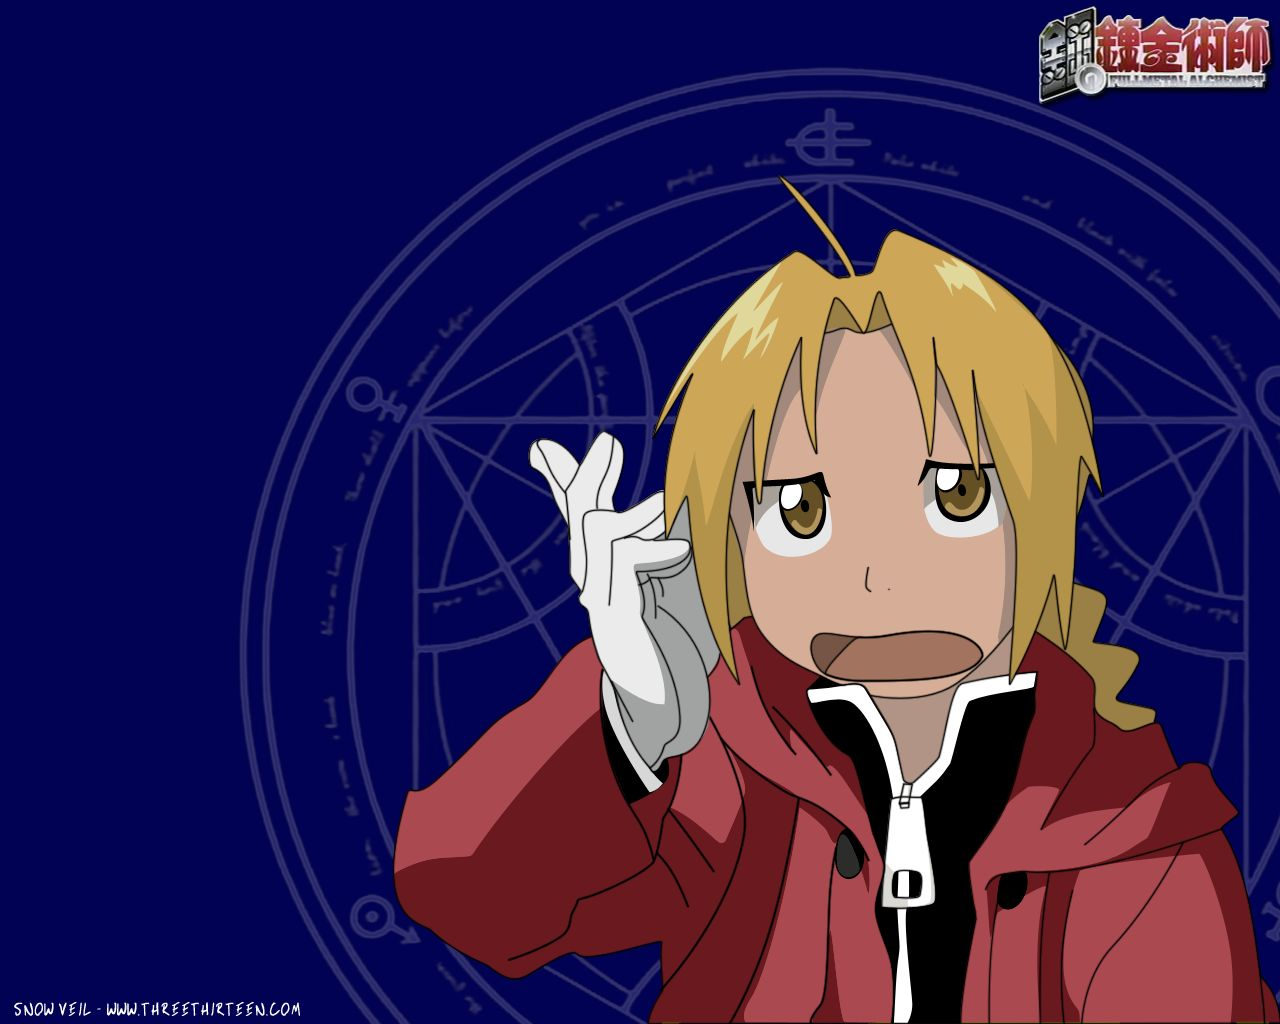 fullmetal alchemist Wallpaper Background 6573 1280x1024